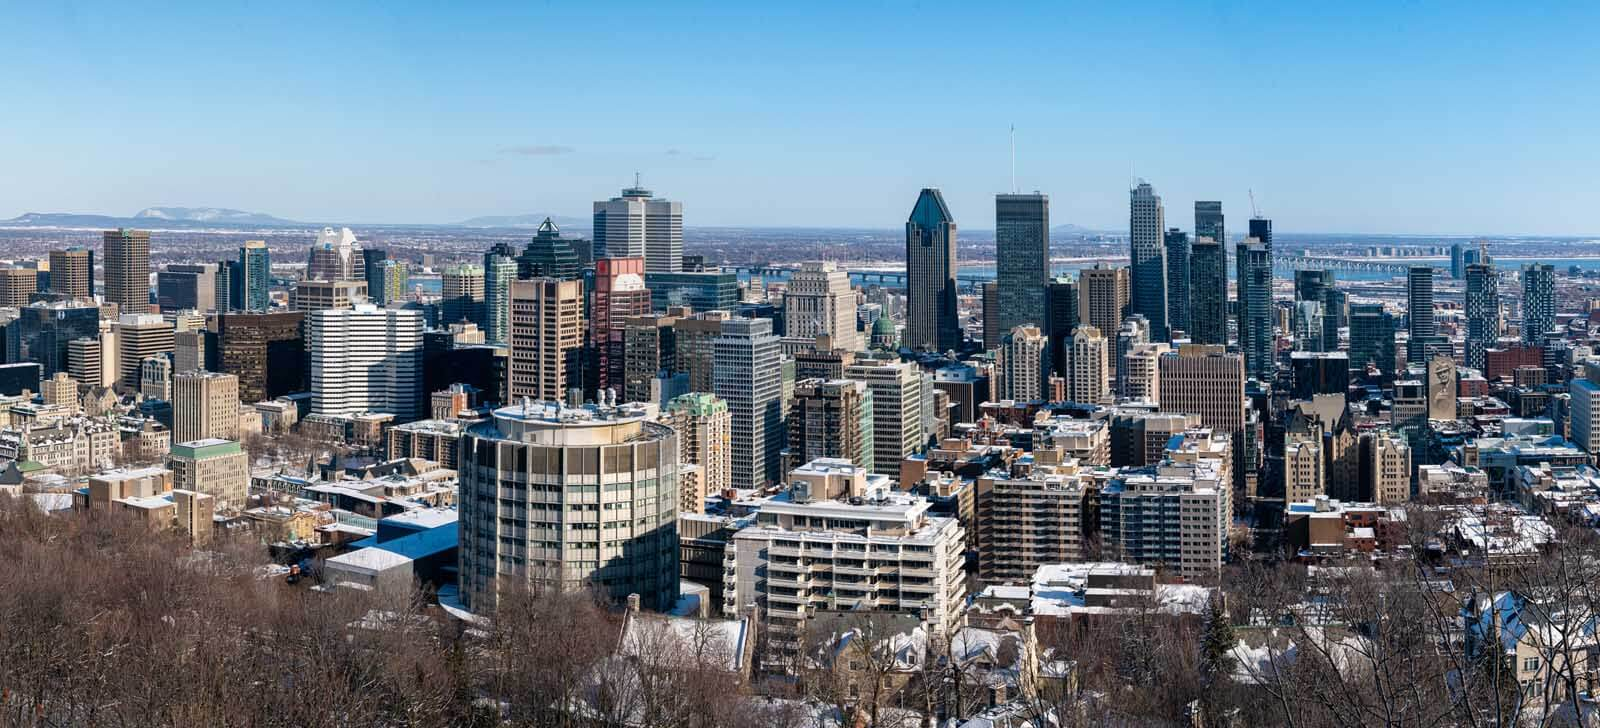 panoramic view of Montreal in Quebec from the vantage point from Mont Royal